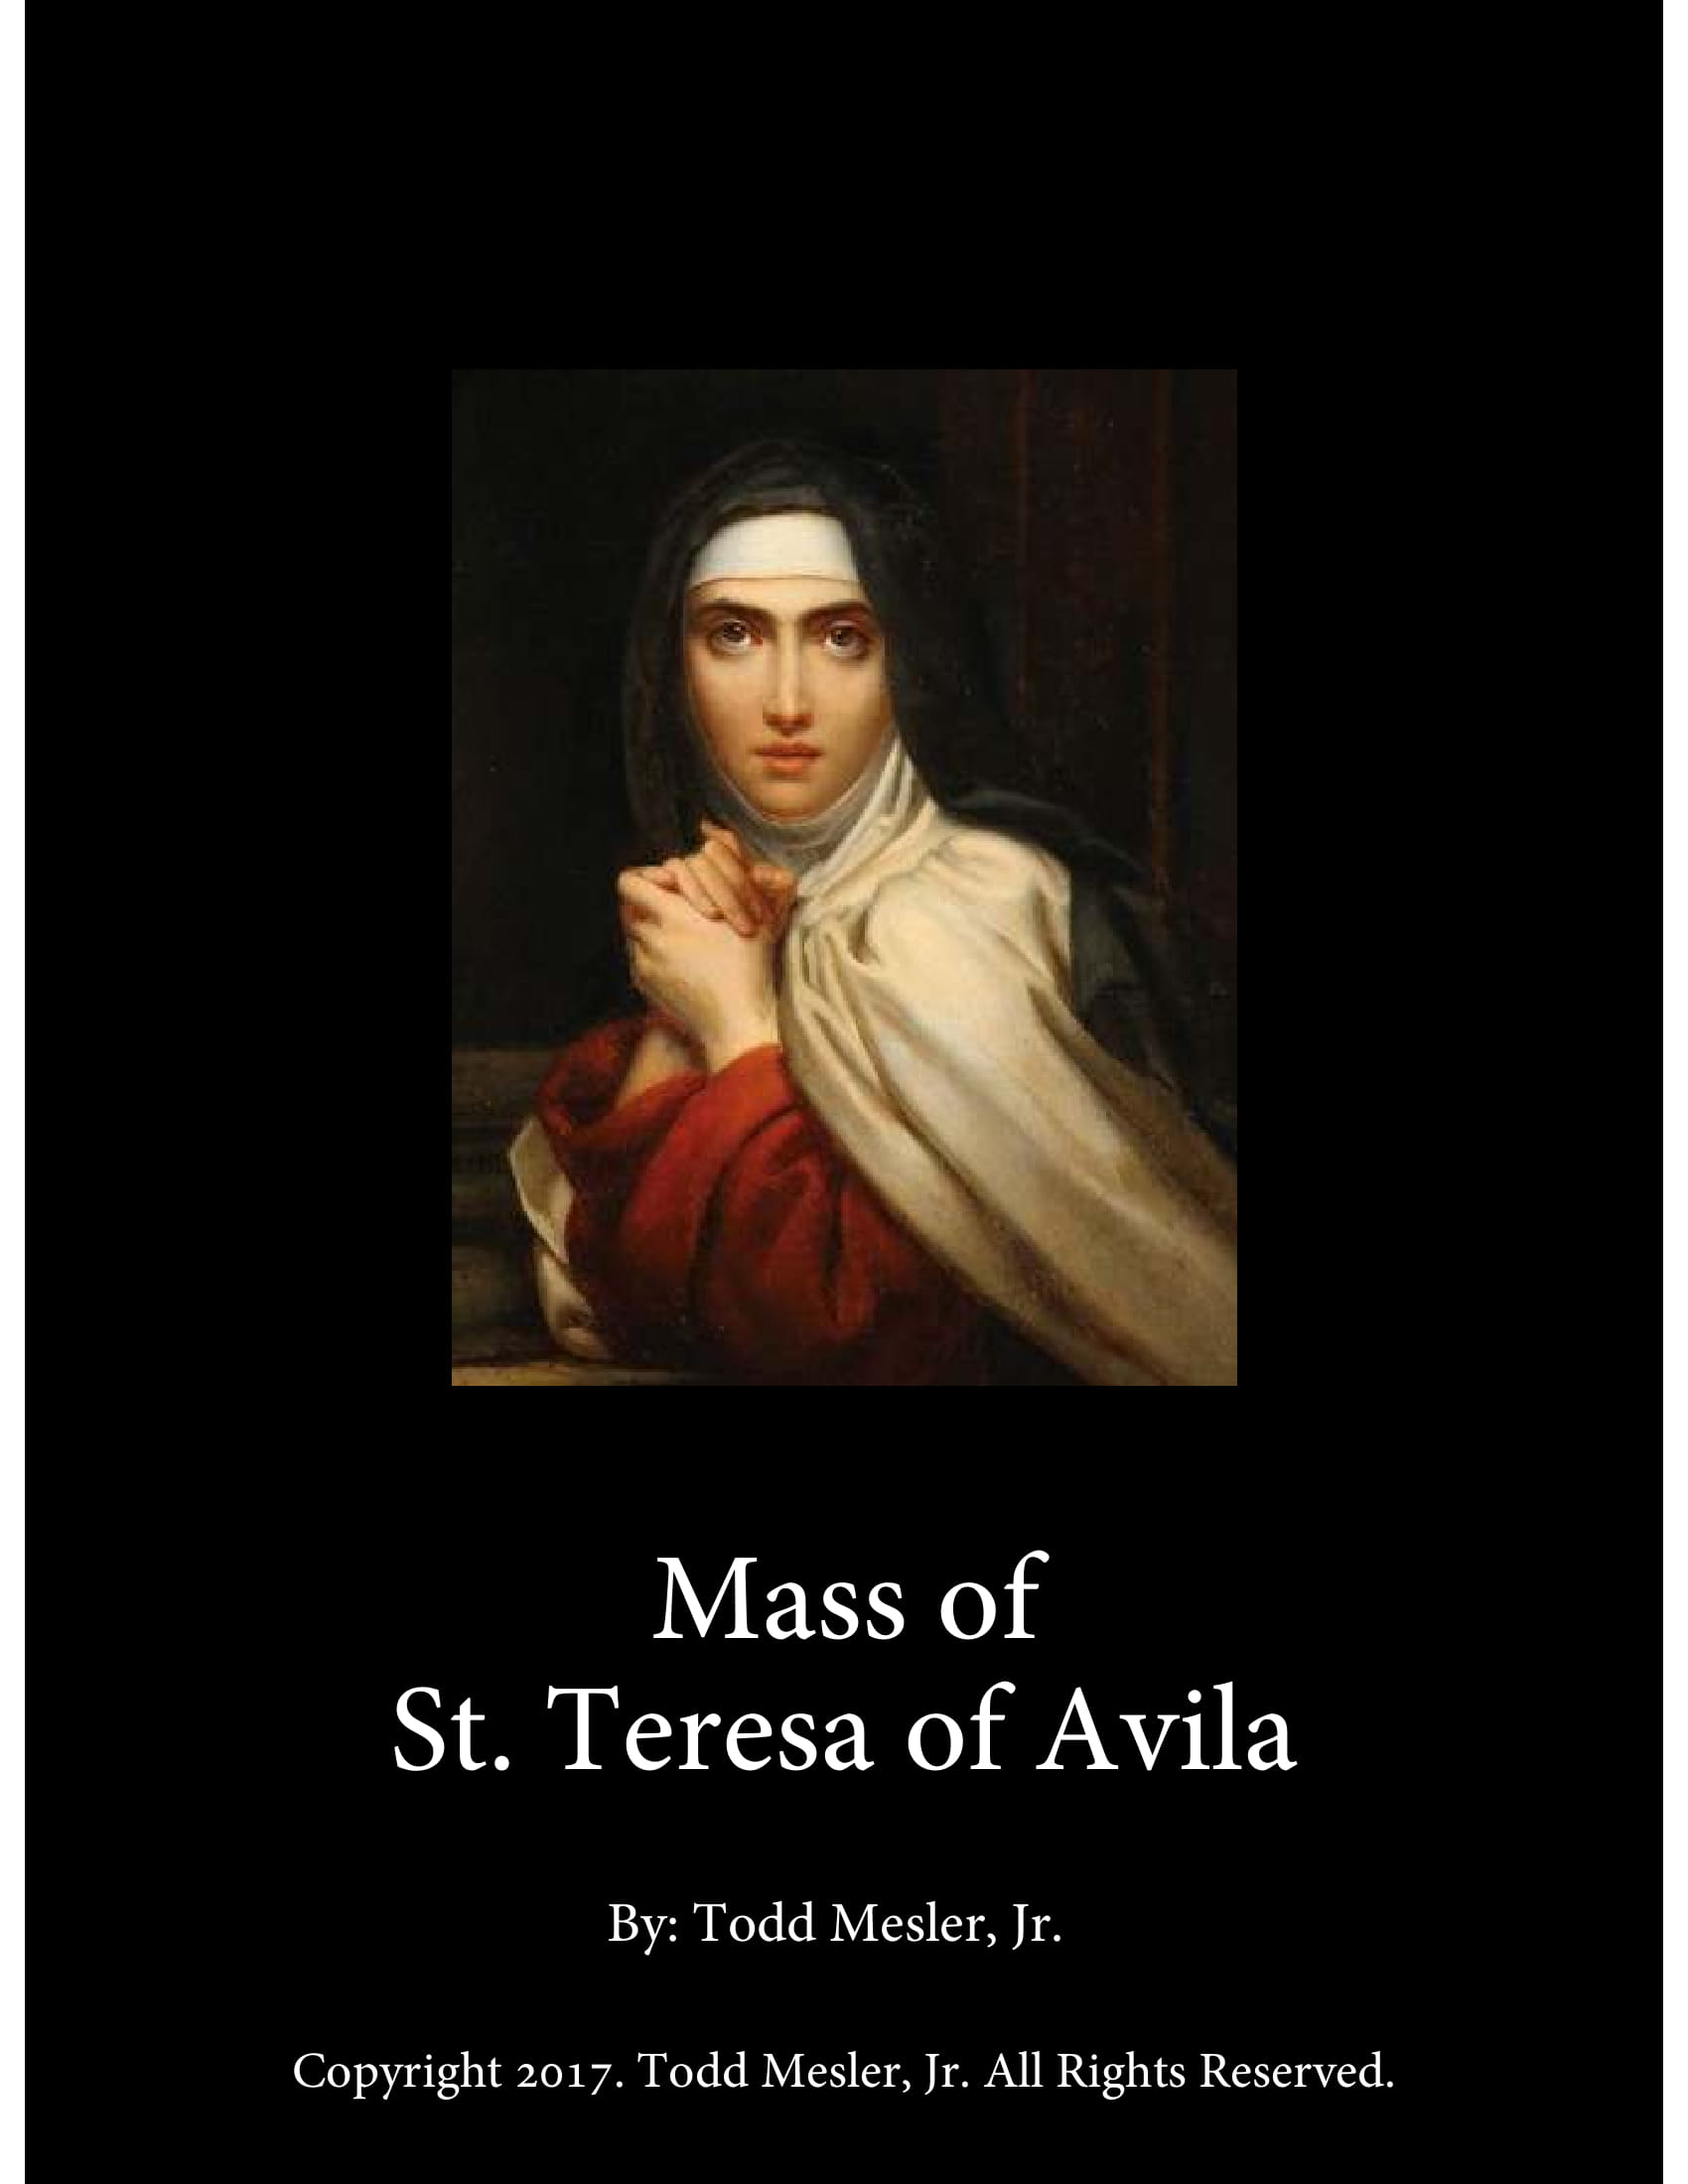 Mass of St. Teresa of Avila Cover Page 1